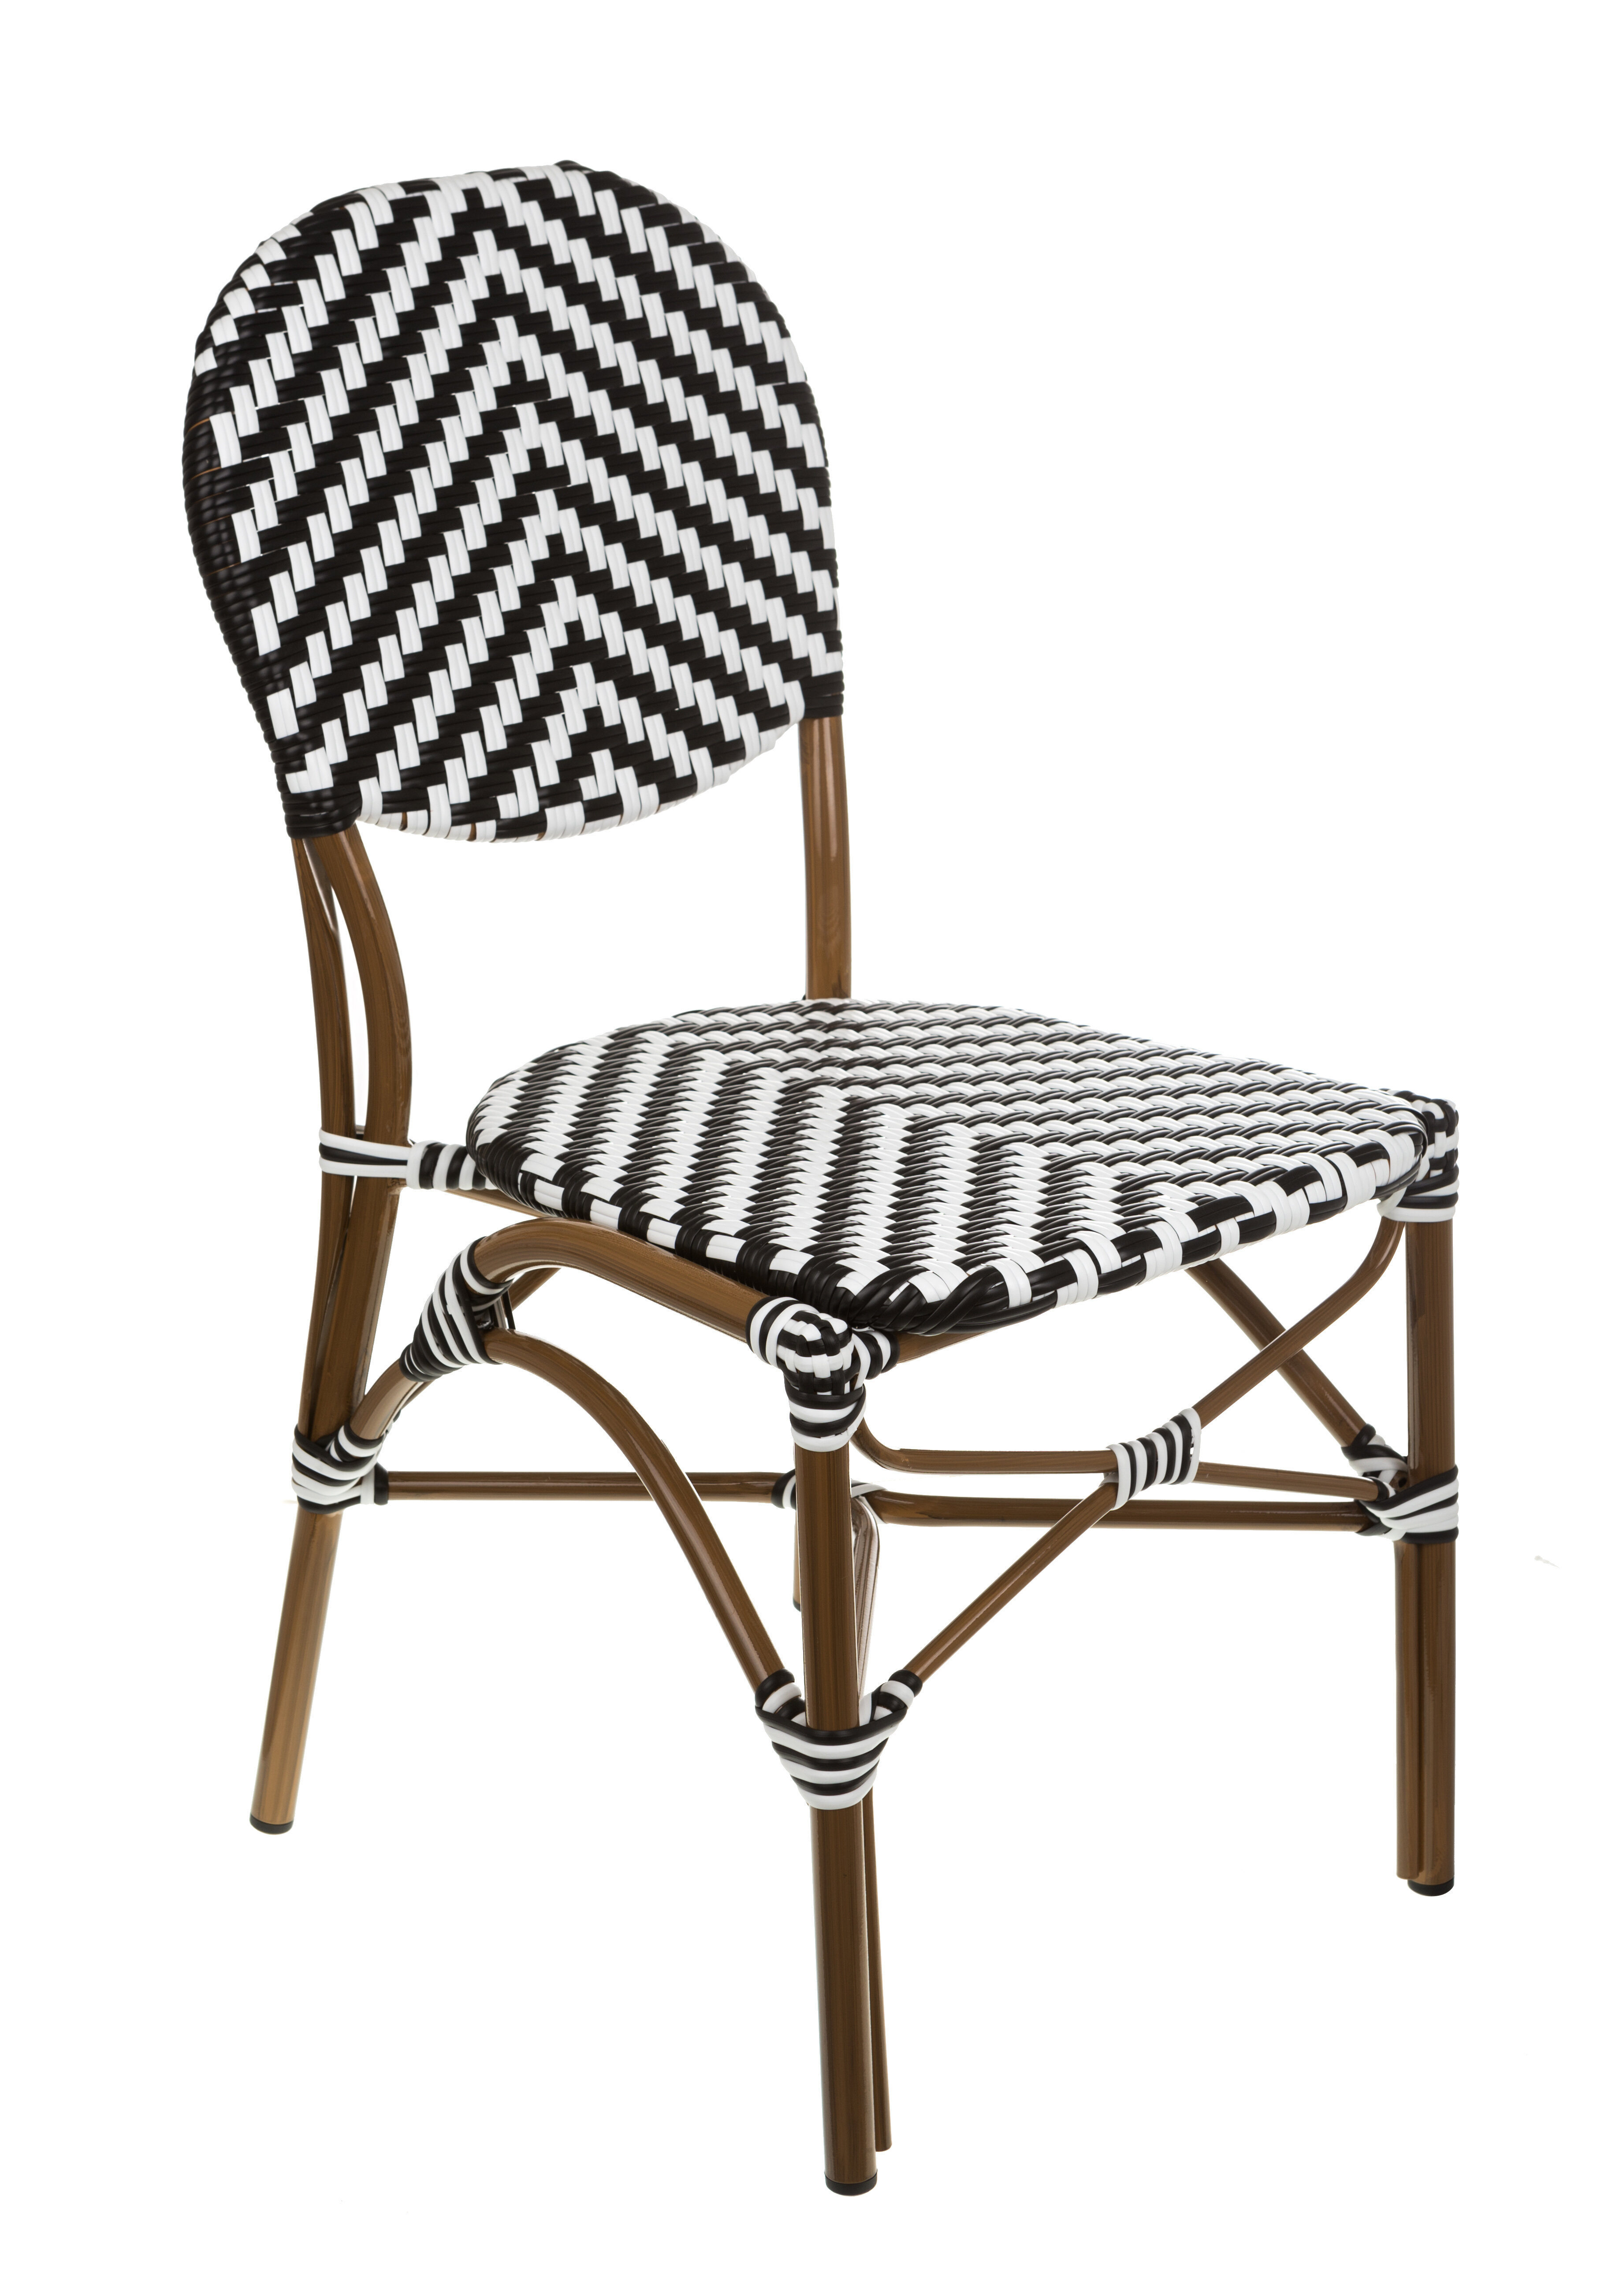 Brayden Studio Shadwick Bistro Stacking Patio Dining Chair